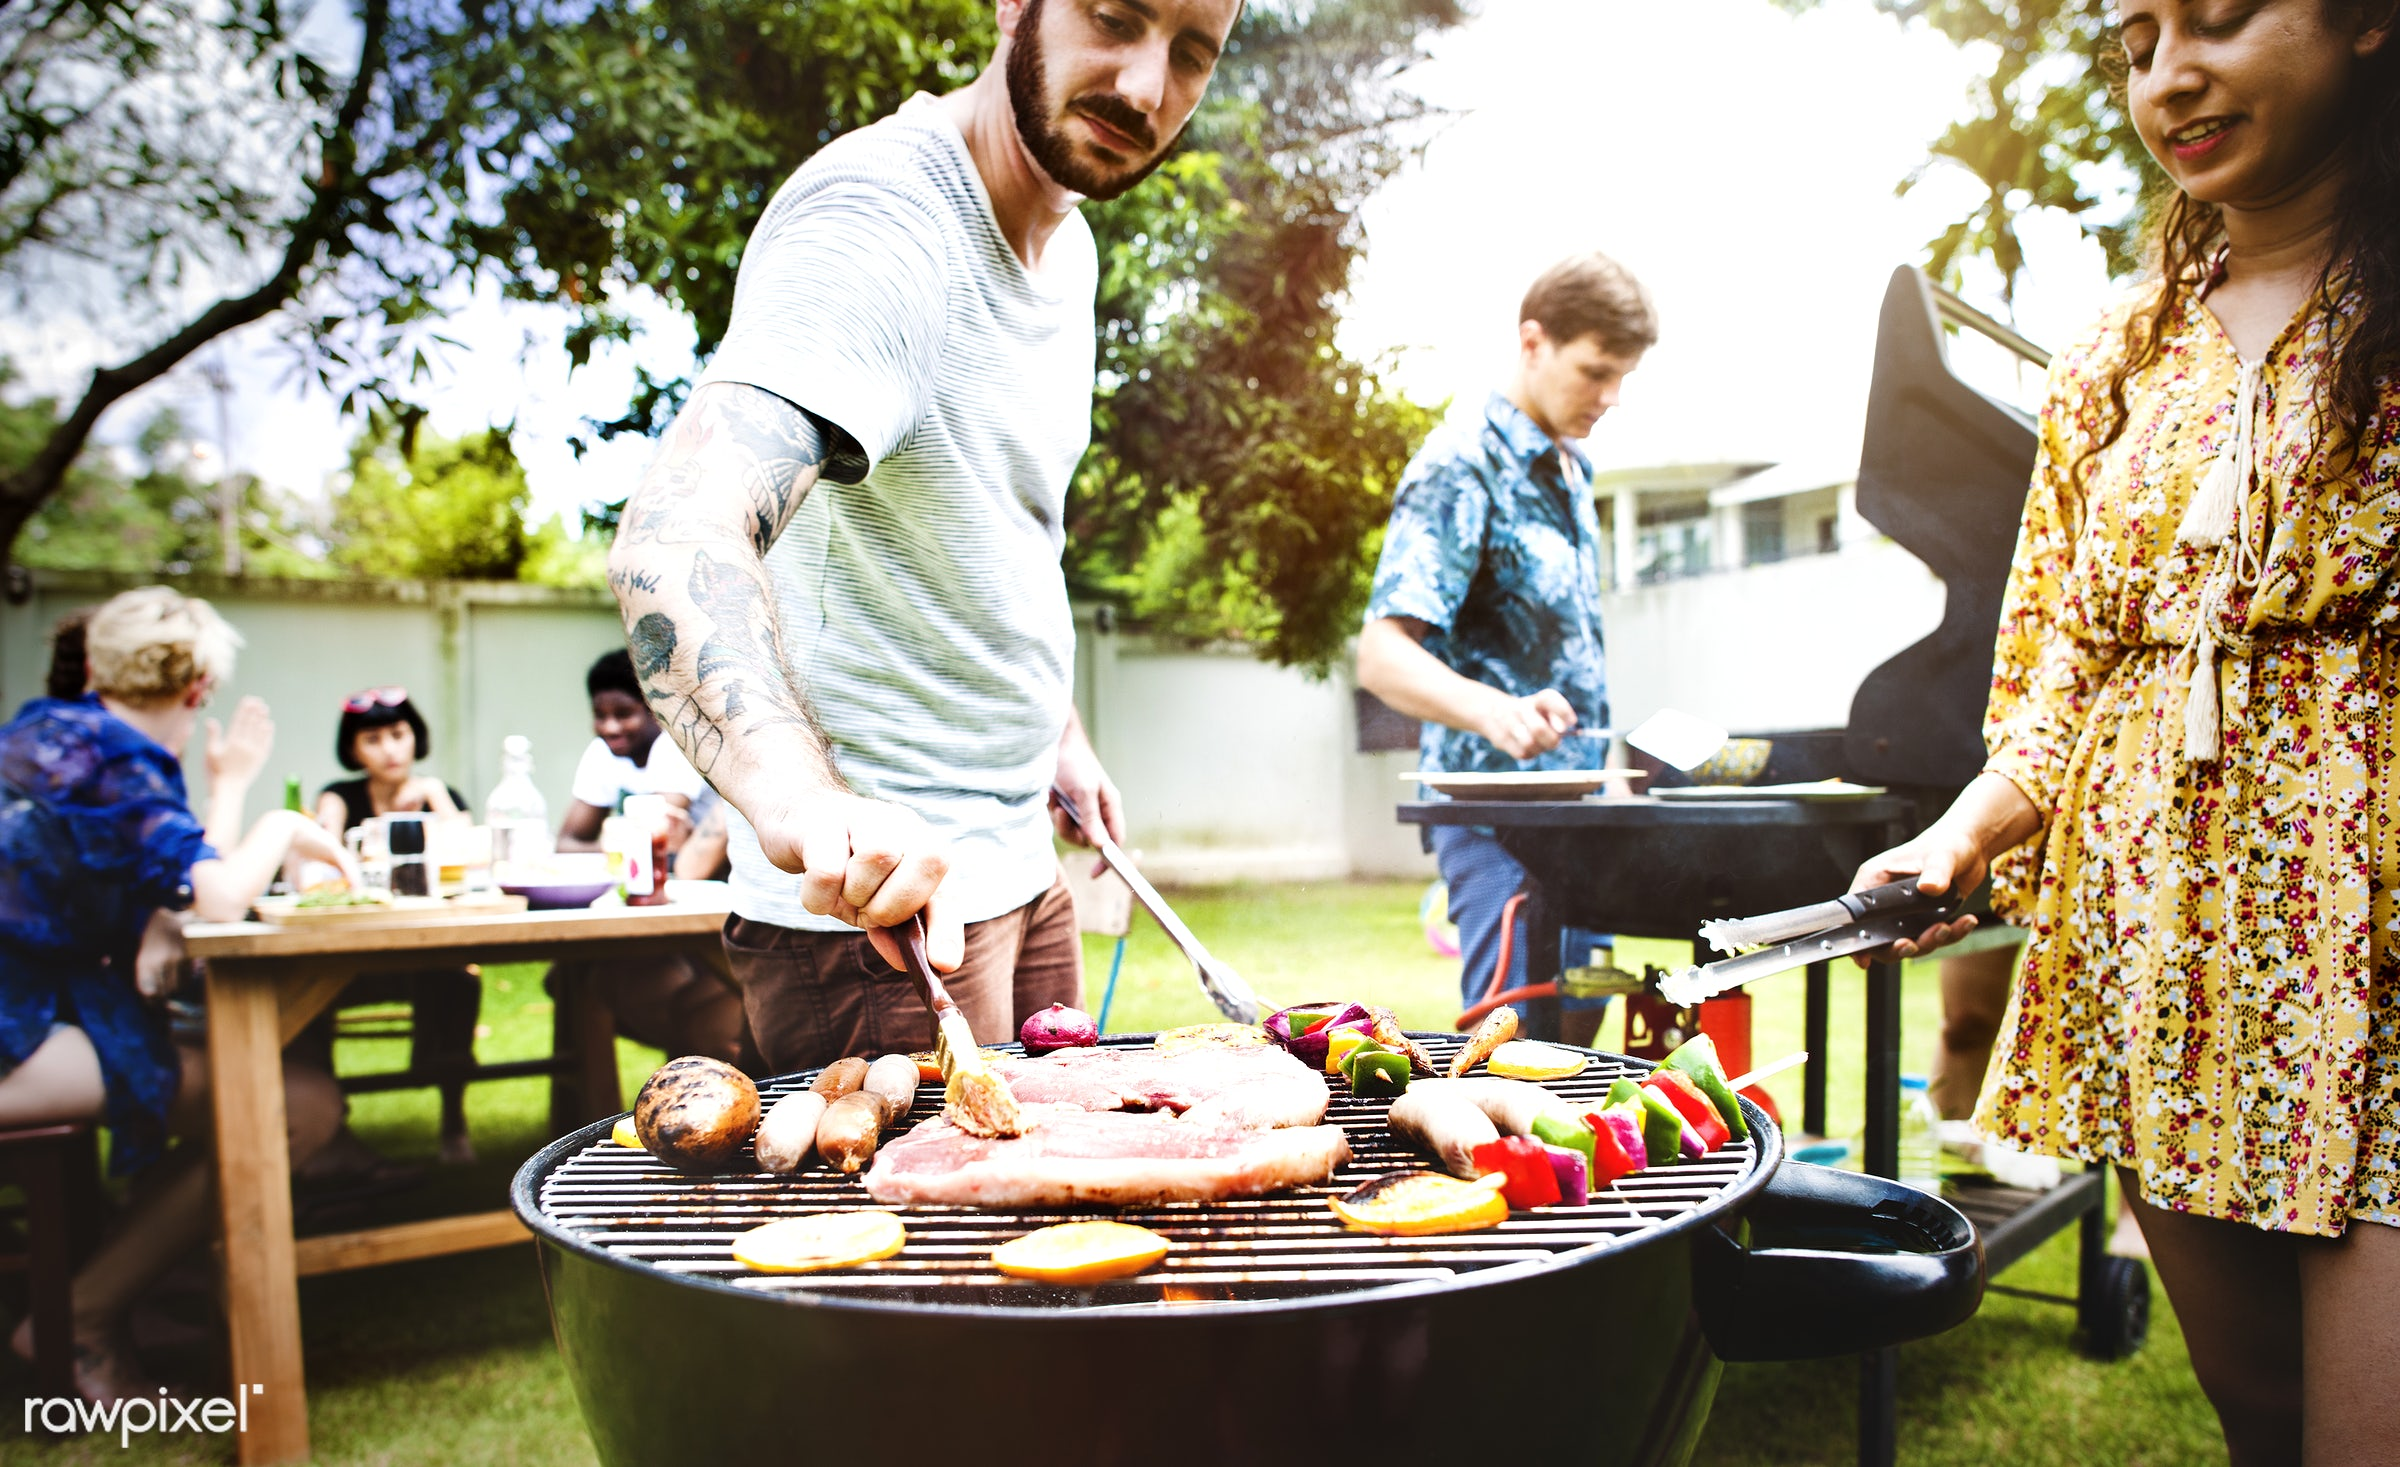 grill, tomato, yard, diverse, homemade, party, people, together, friends, hands, fresh, casual, cooking, tattoo, meats, bbq...